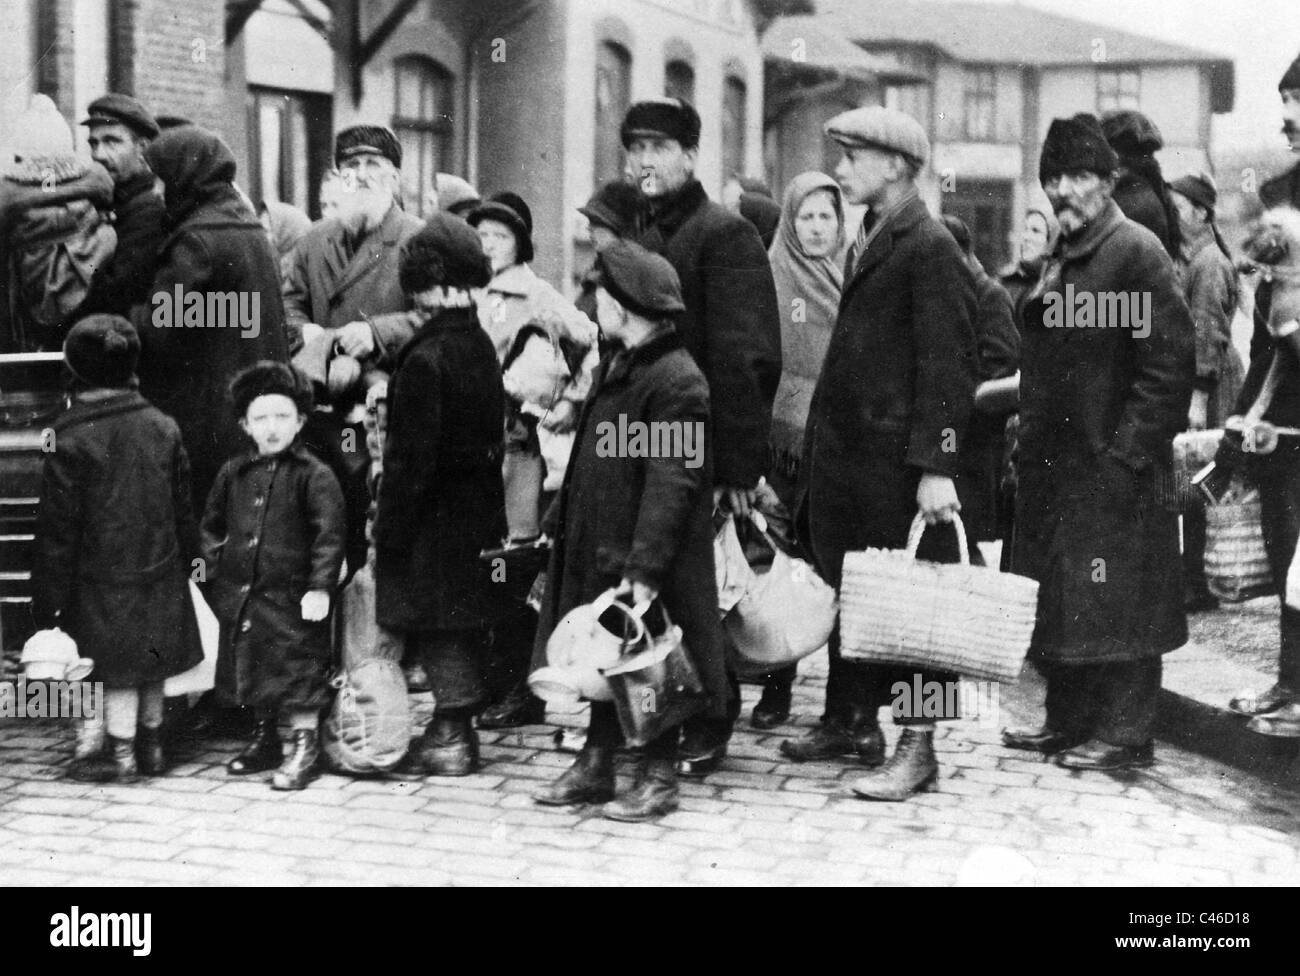 Volga german refugees in a refugee camp in germany stock for Voga deutsch